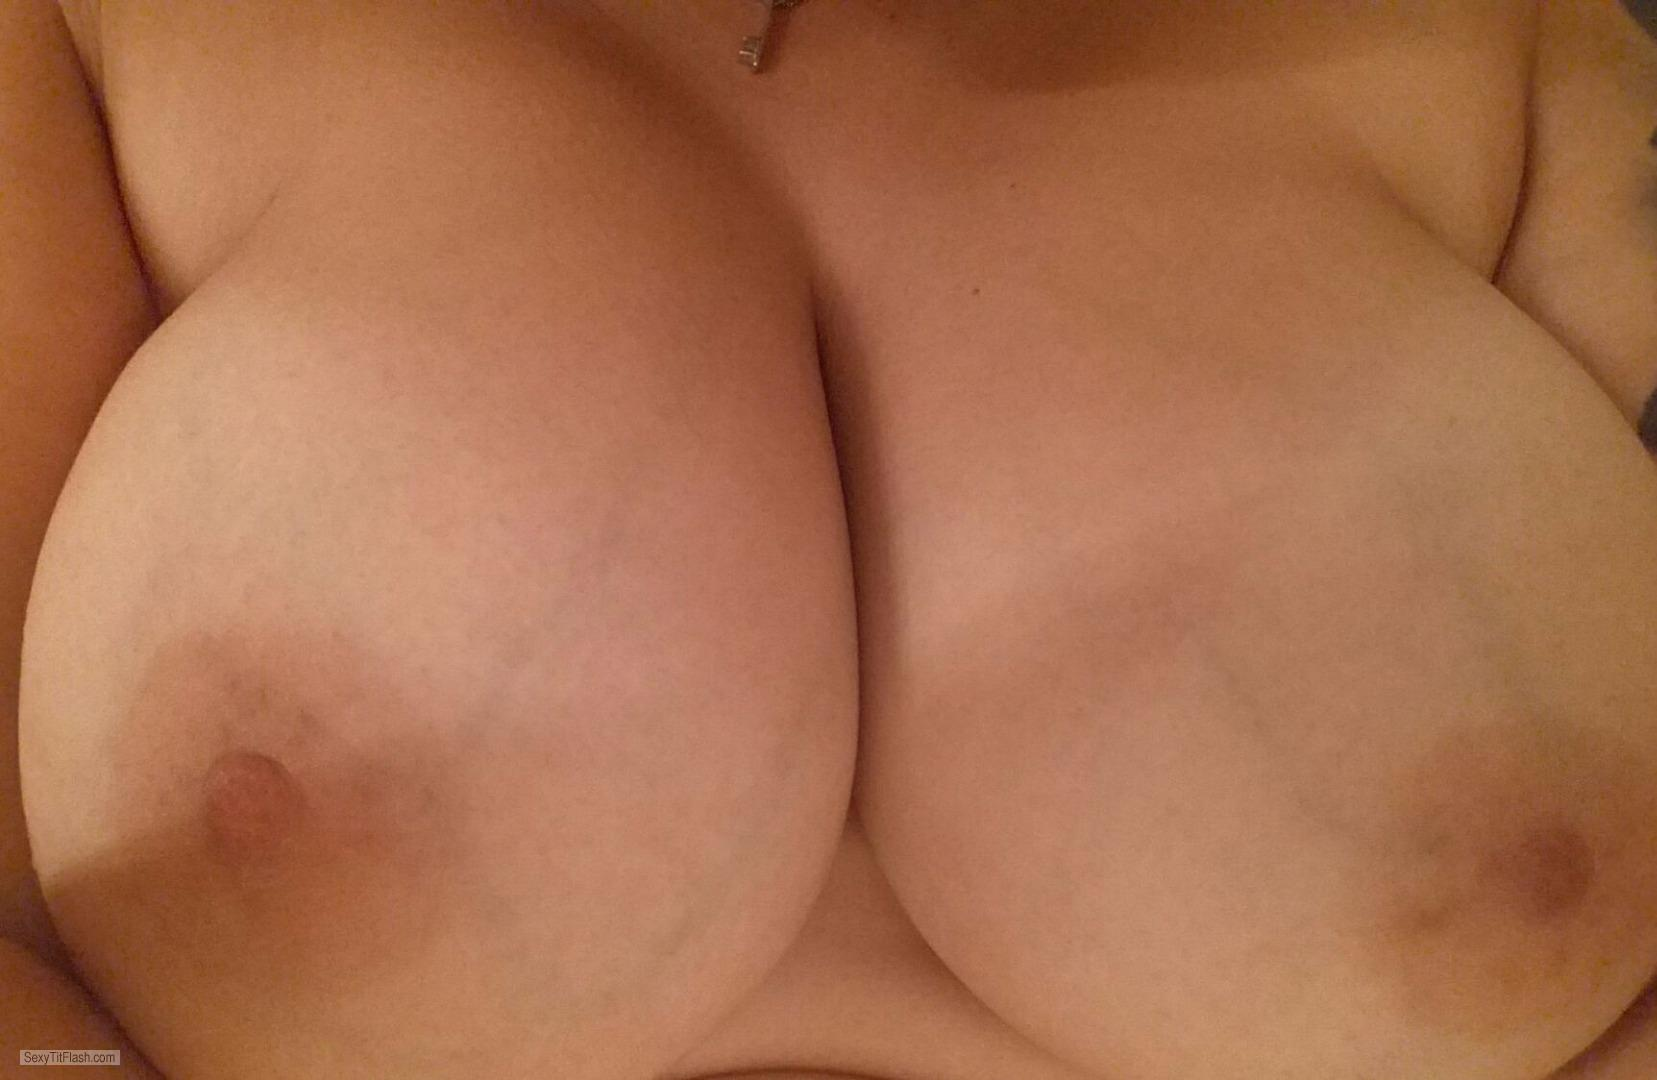 Tit Flash: My Very Big Tits (Selfie) - 38ddd from United Kingdom